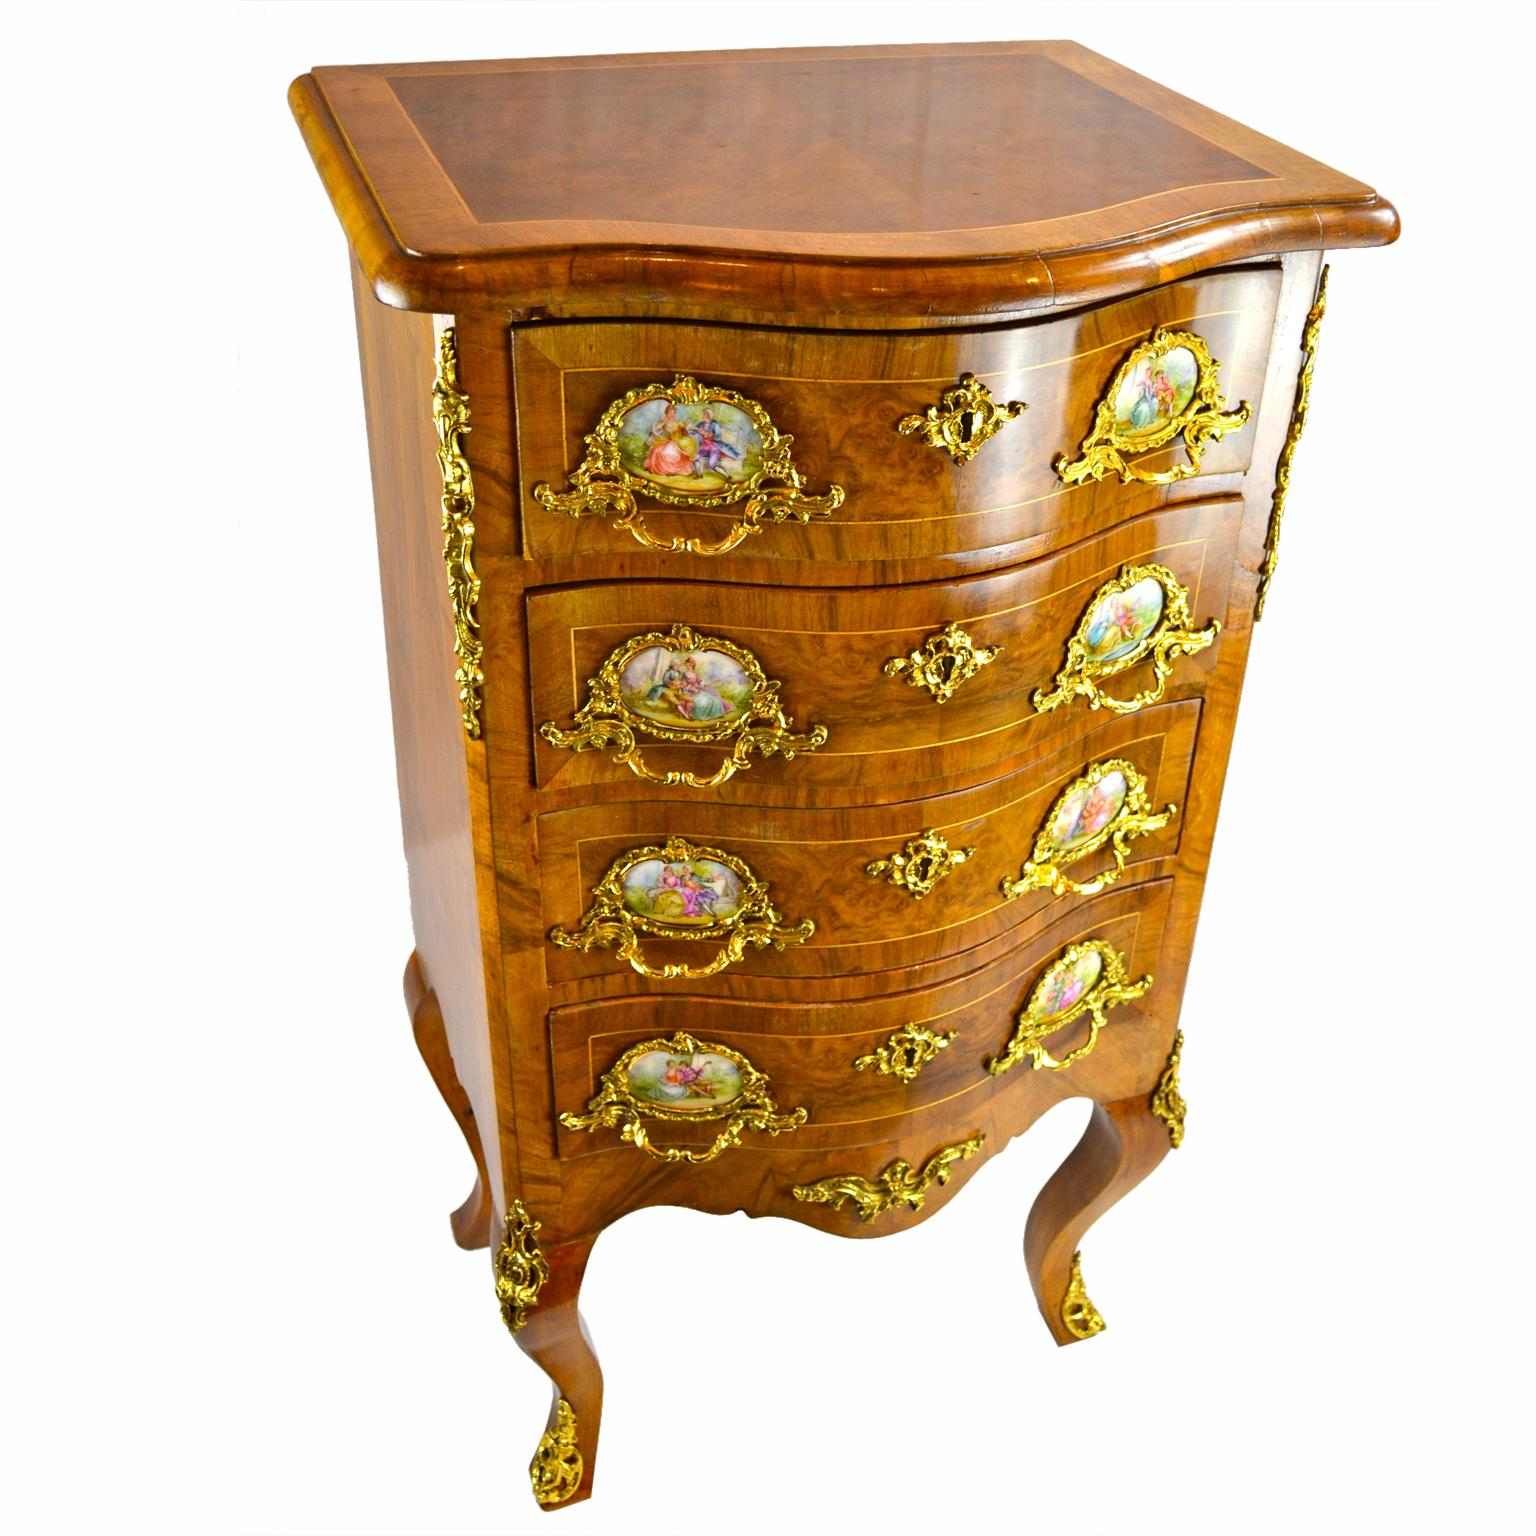 Antique Furniture French Antique Vintage Louis Xv Style Chest Of Drawers Year-End Bargain Sale Chests Of Drawers